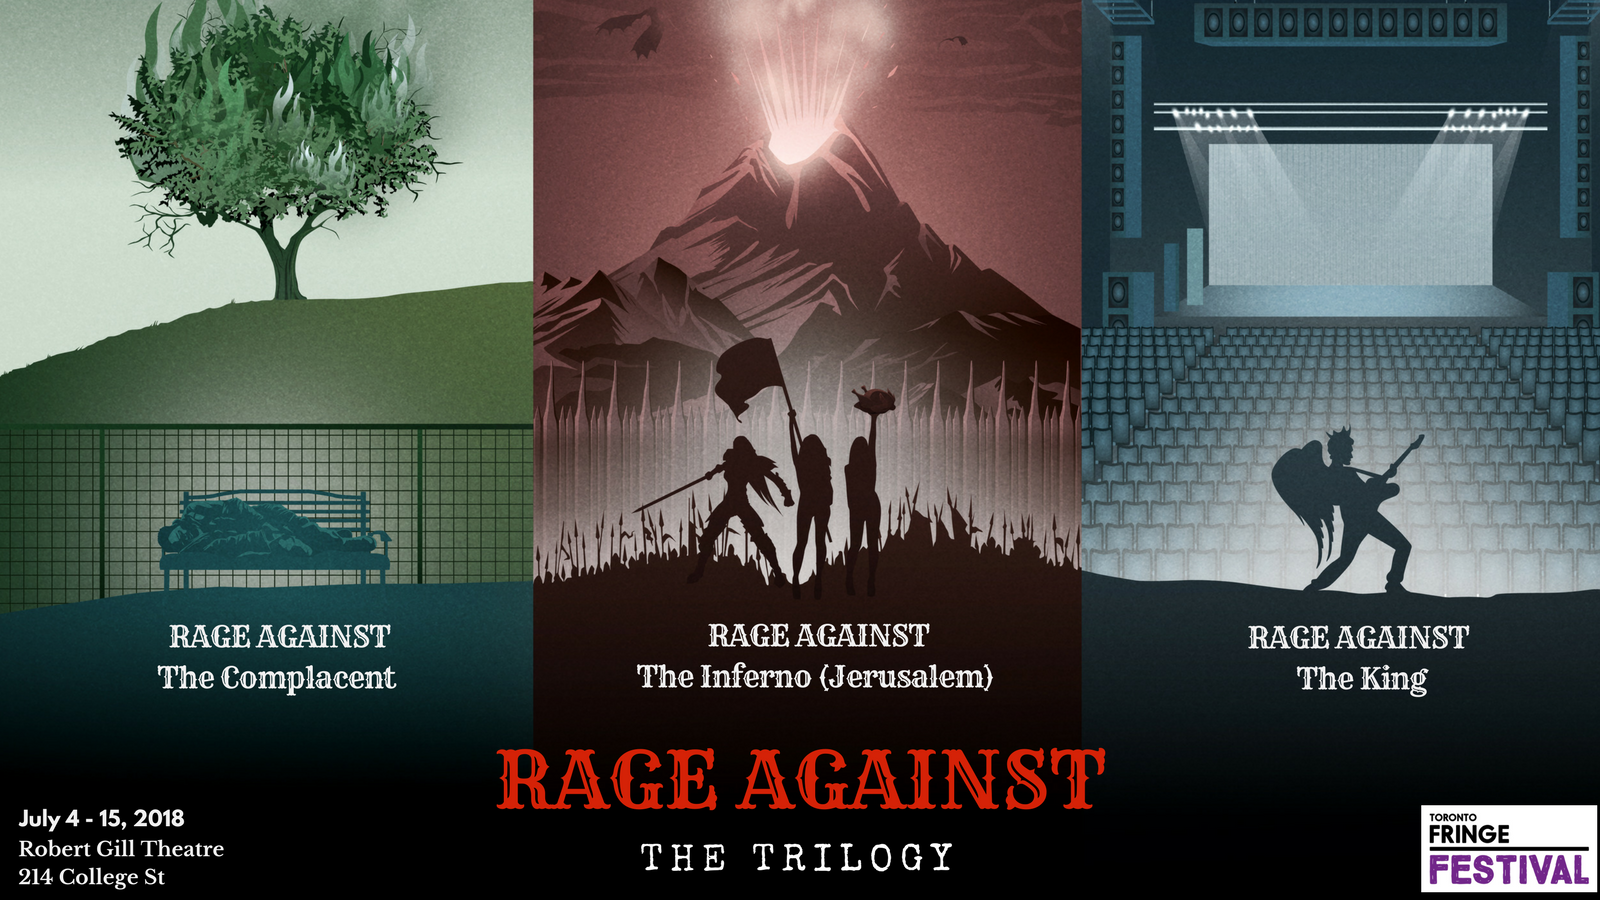 Rage Against - Fringe Website (1600px by 900px) - Final (1).png